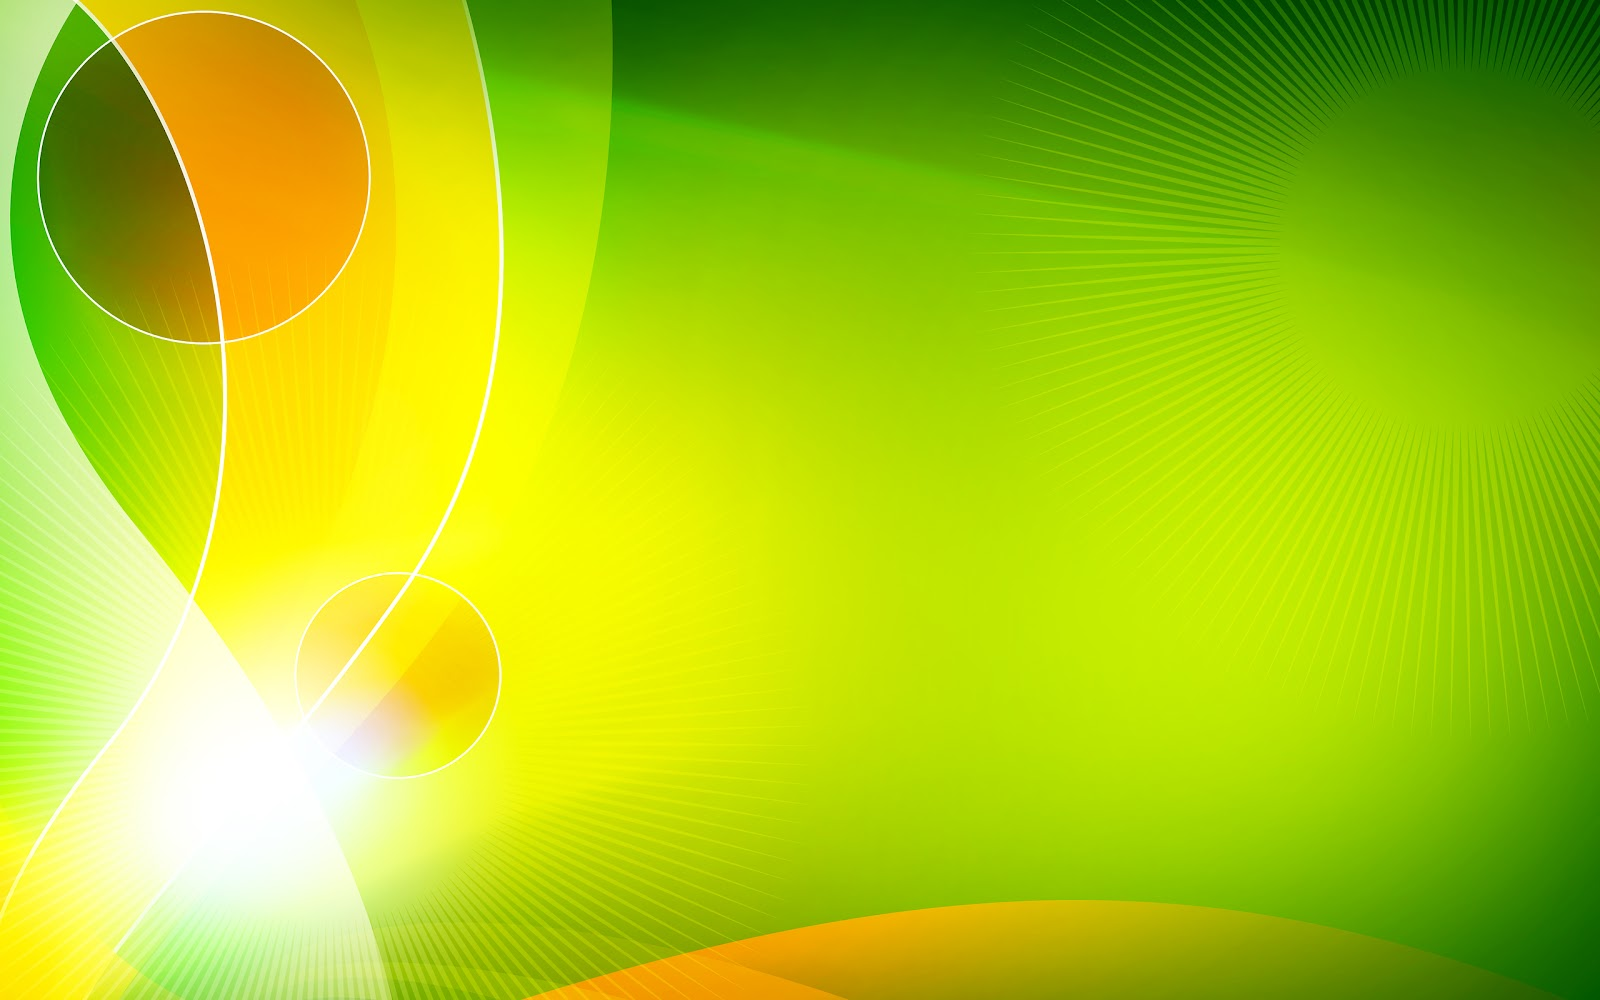 Free Download Green Orange Vector 1600x1000 For Your